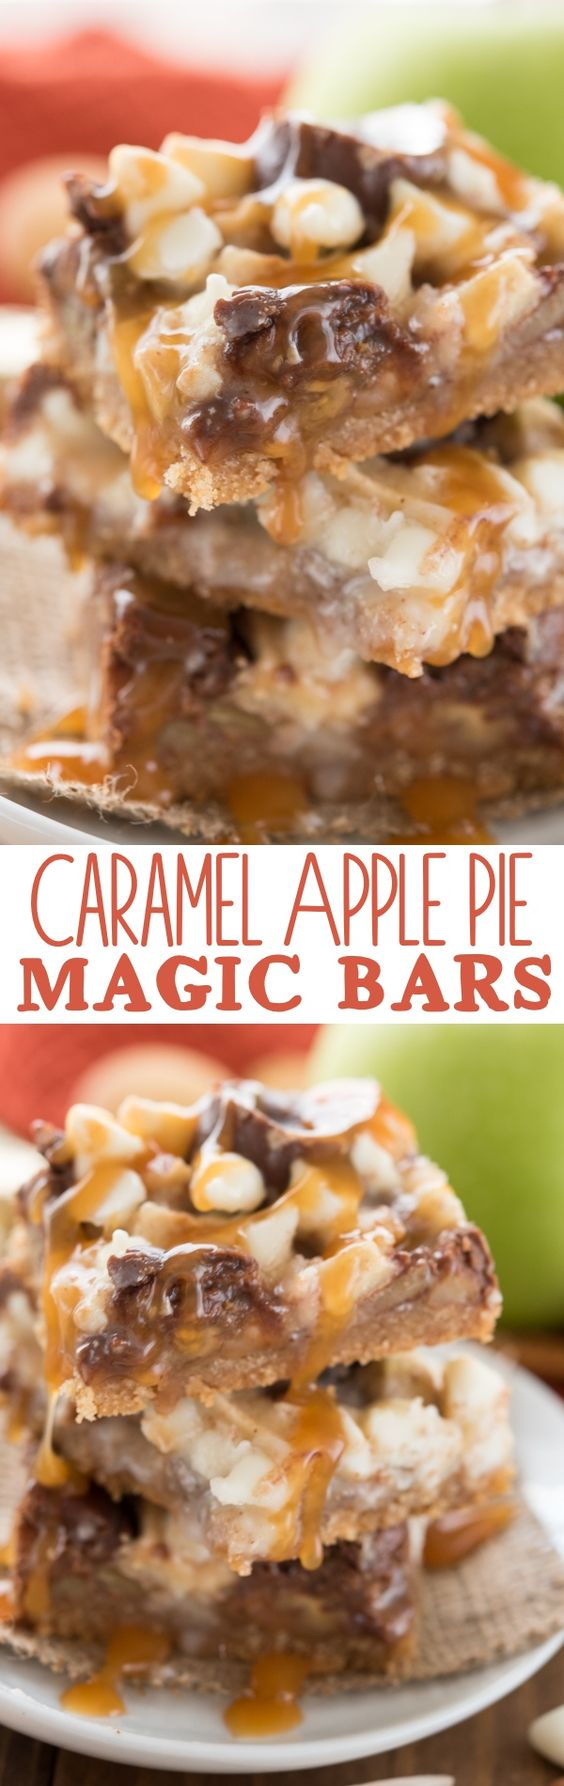 Thanksgiving Desserts: Caramel Apple Pie Magic Bars